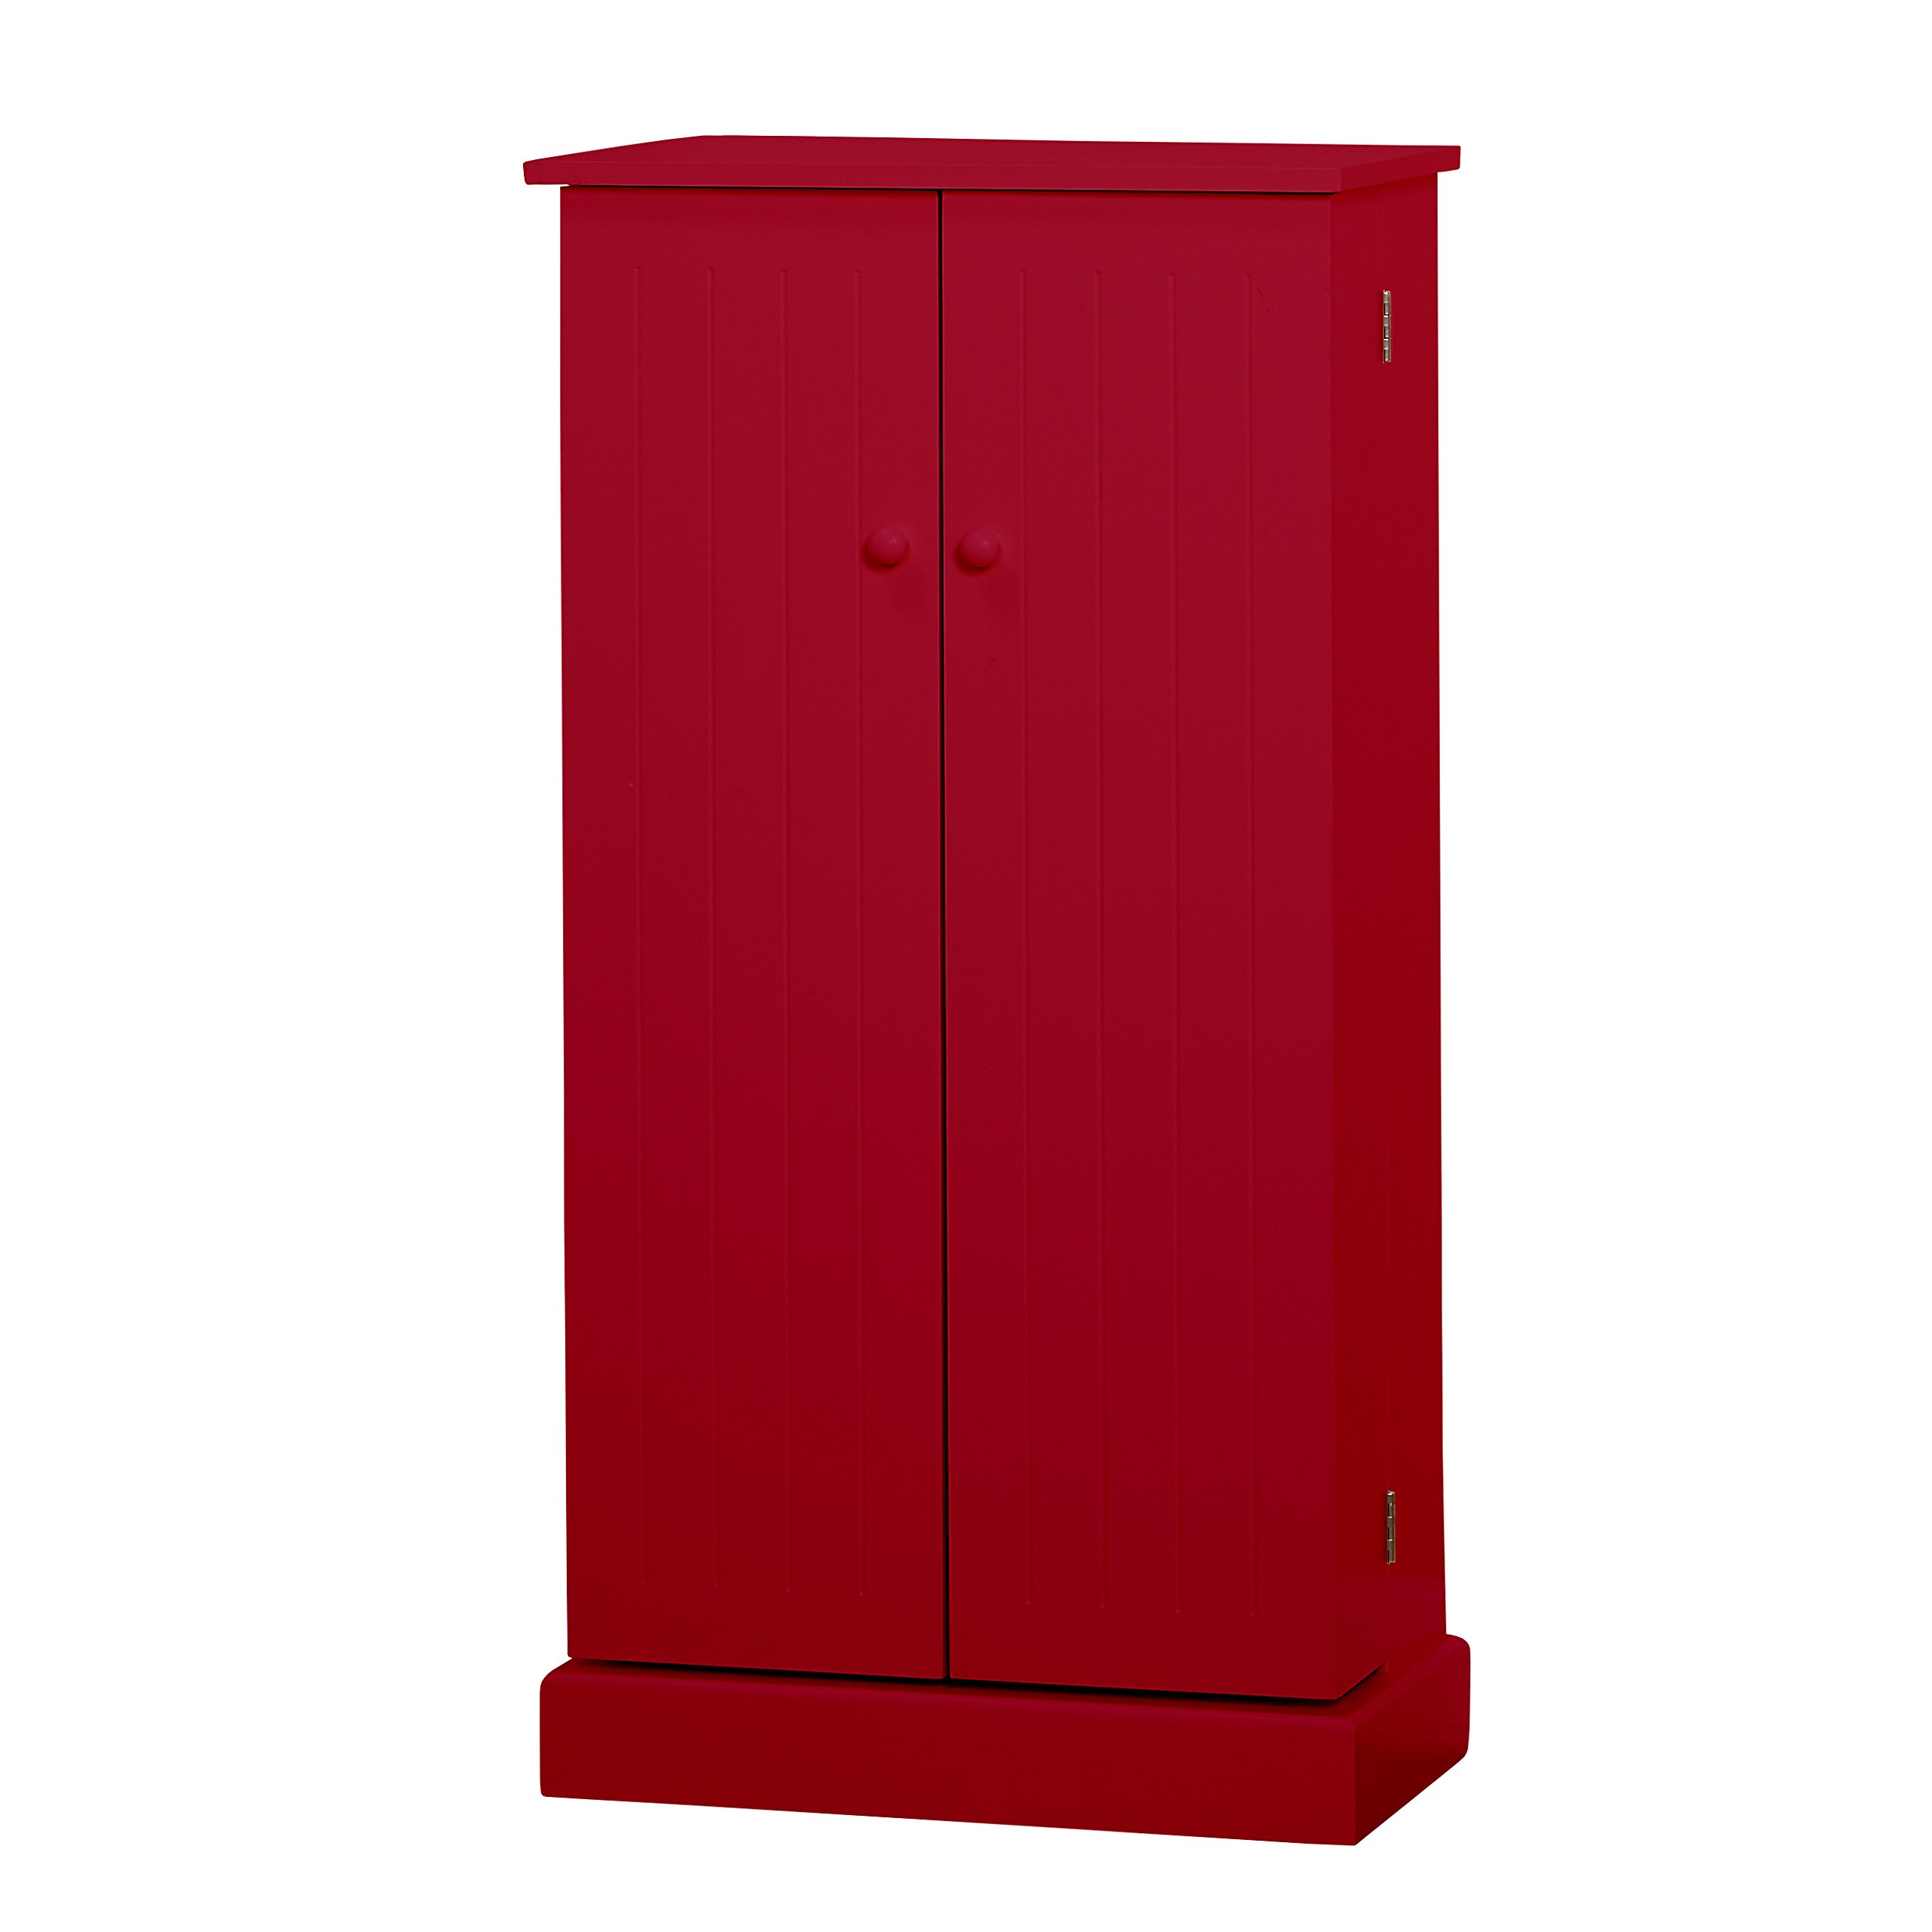 Target Marketing Systems 61885RED Utility Pantry, Red by Target Marketing Systems